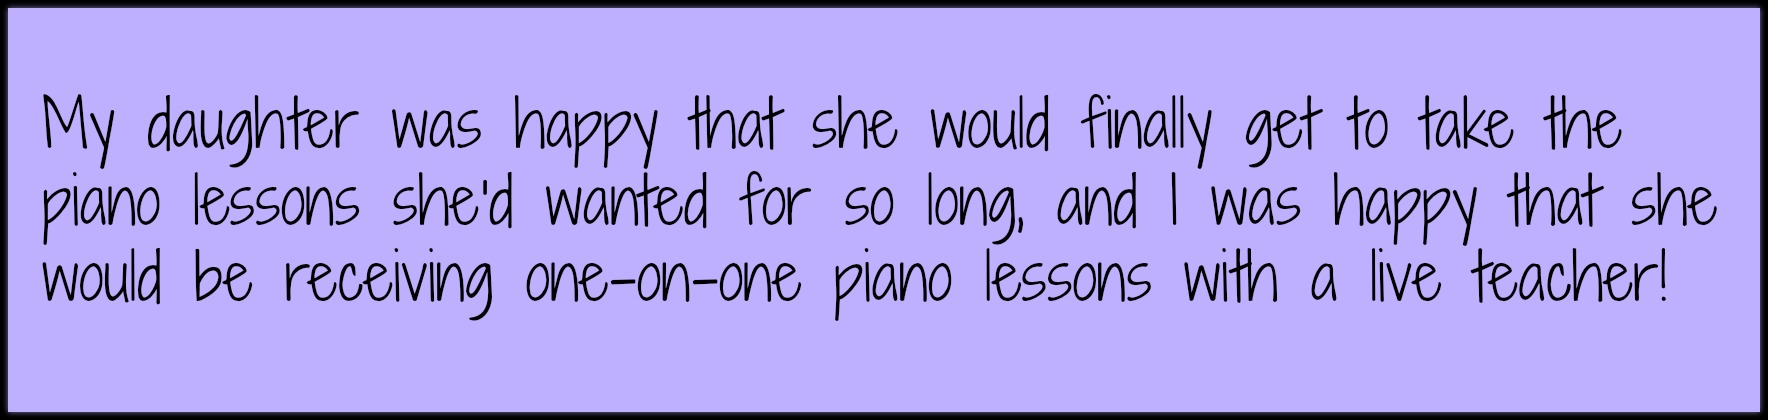 Real live piano lessons via Skype!